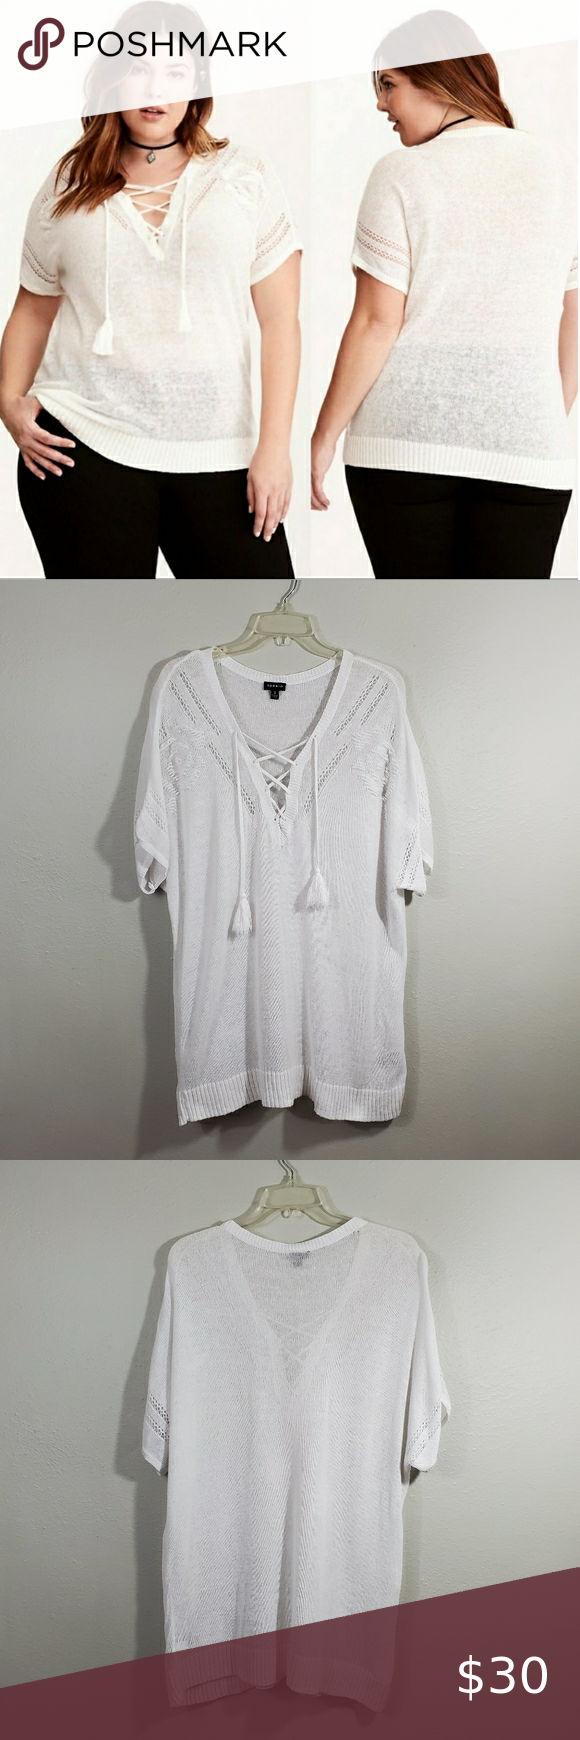 Torrid White Linen V Neck Lace Up Tassel Top 2X Excellent preowned condition / No flaws.  Size 2X / 18-20 (labeled 2). Linen blend open knit lace-up V-neck top. Tassel accent. Semi-sheer knit.   -Approximate measurements: 24.5